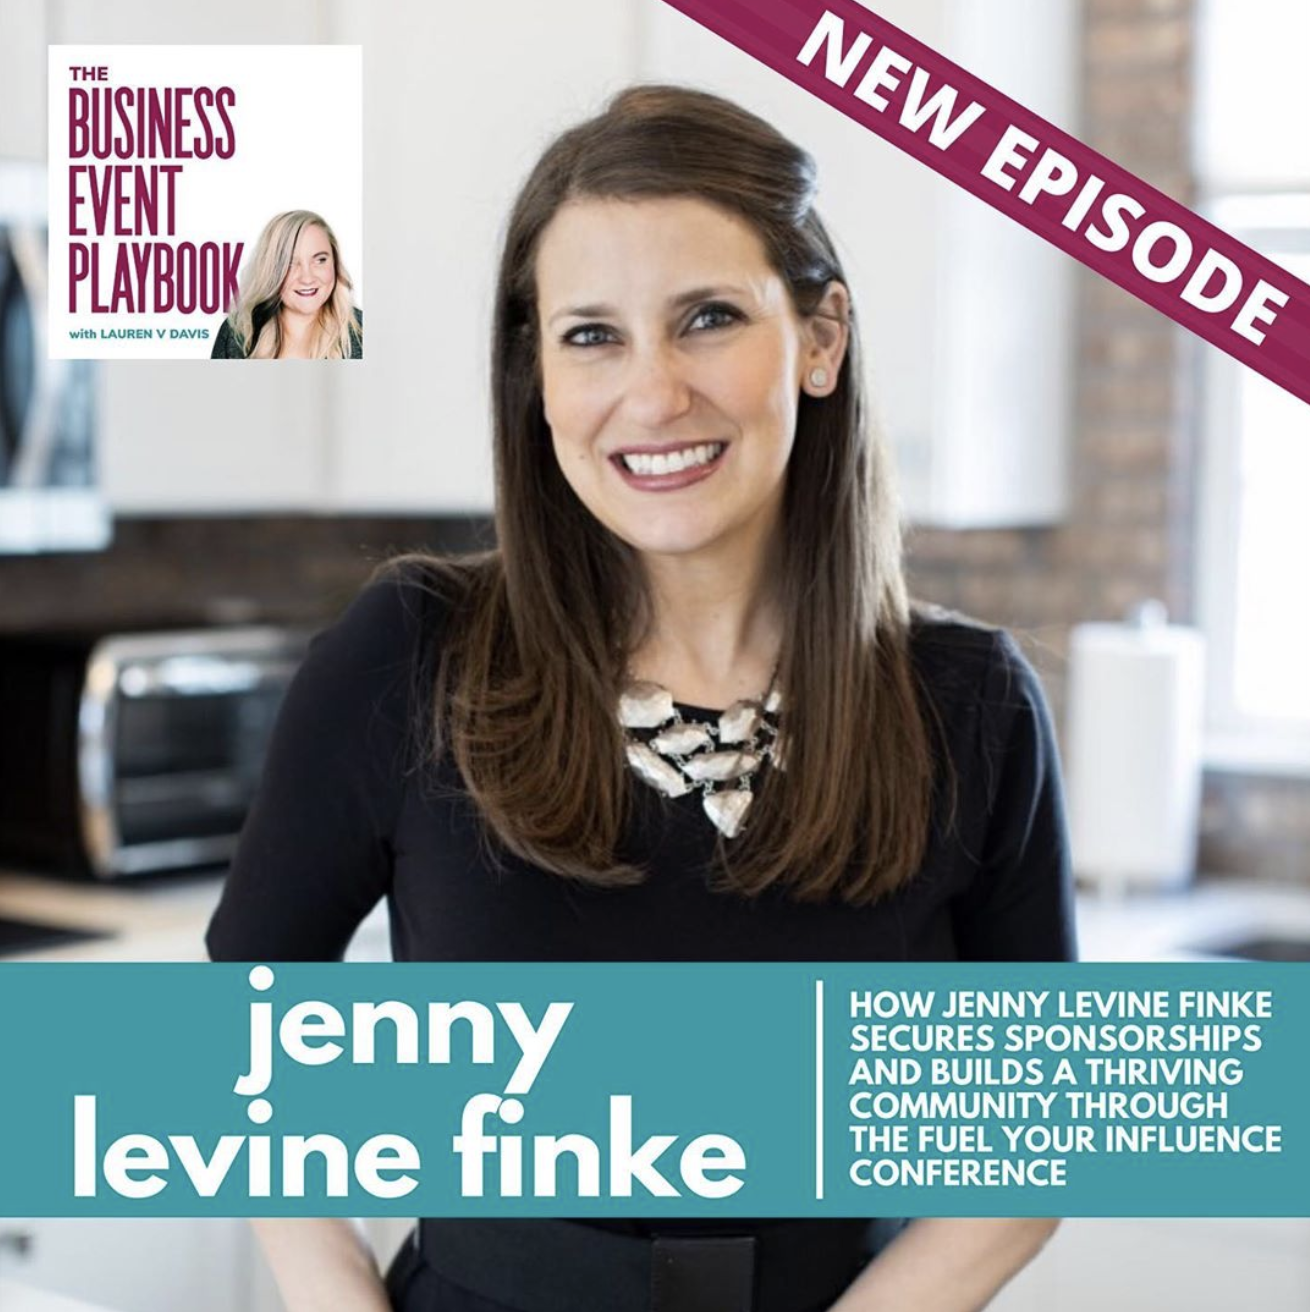 Specifically, building traffic through SEO strategy, and Pinterest, Lauren V. Davis and Jenny Levine Finke talk about how Jenny uses social media strategically to monetize her event and blog.